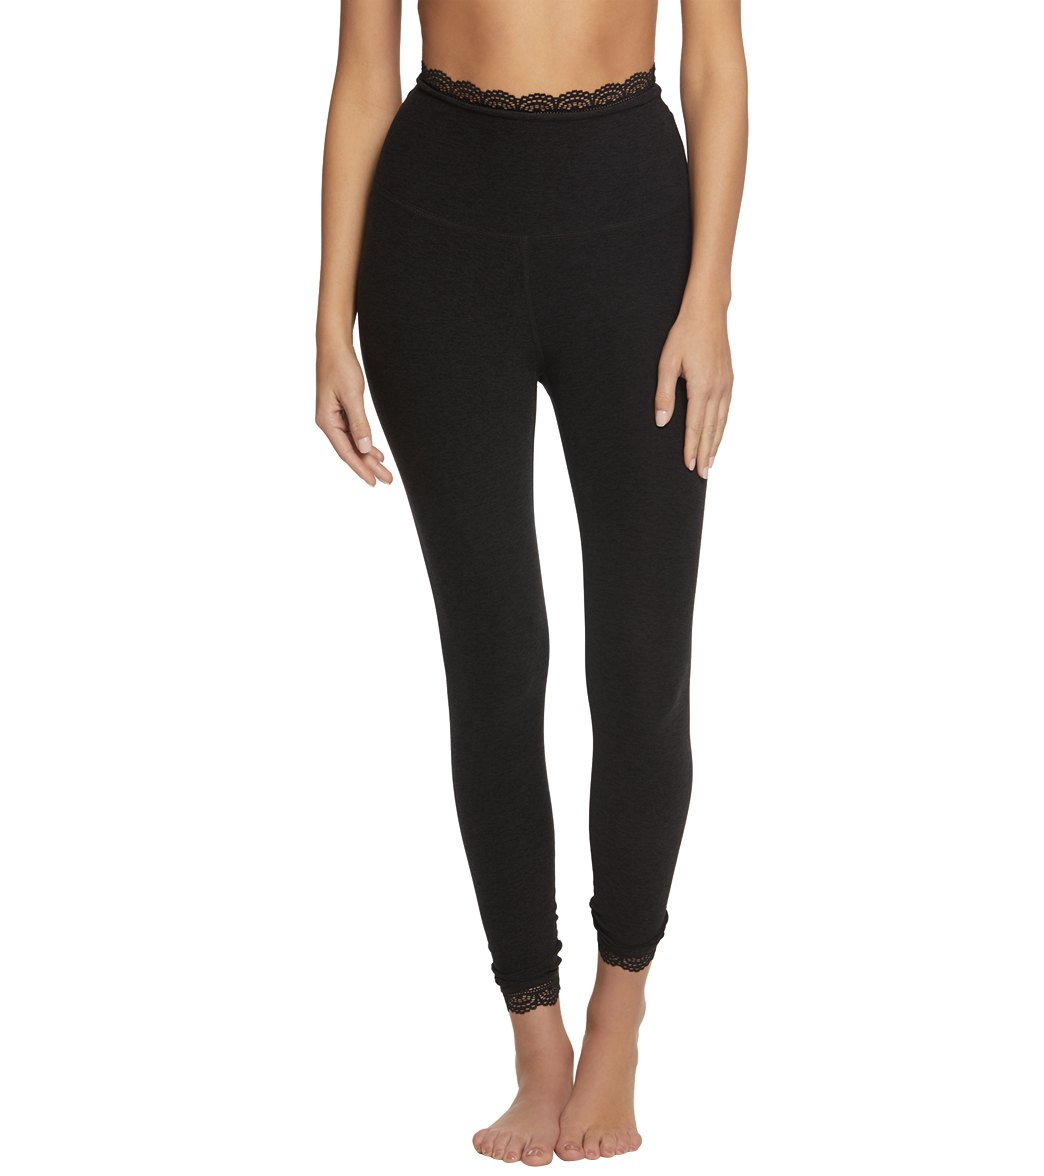 b813bce061 Beyond Yoga Spacedye All For Lace High Waisted 7/8 Yoga Leggings at ...